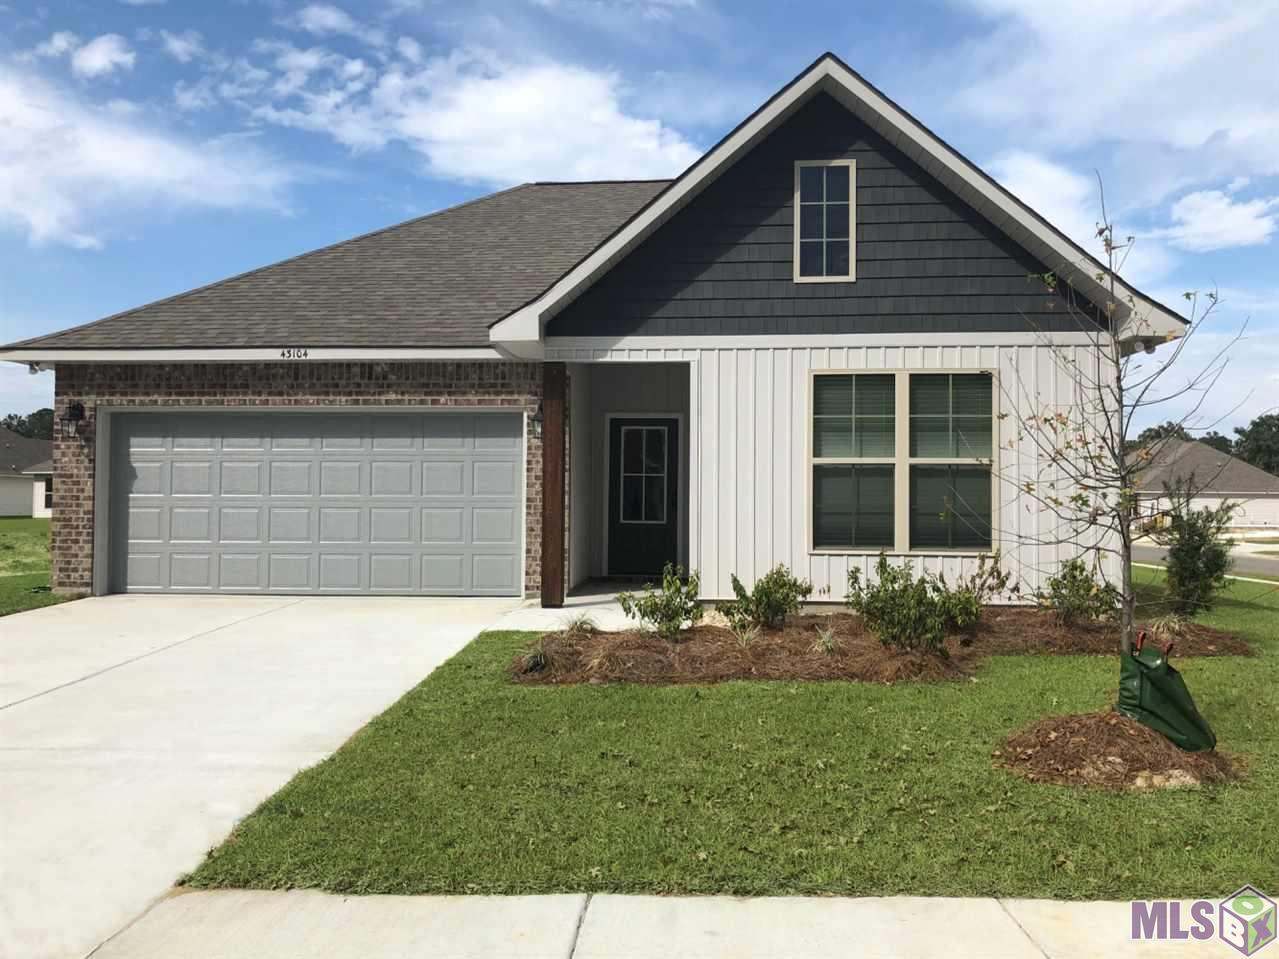 43104 POINTSIDE AVE, Prairieville, LA 70769